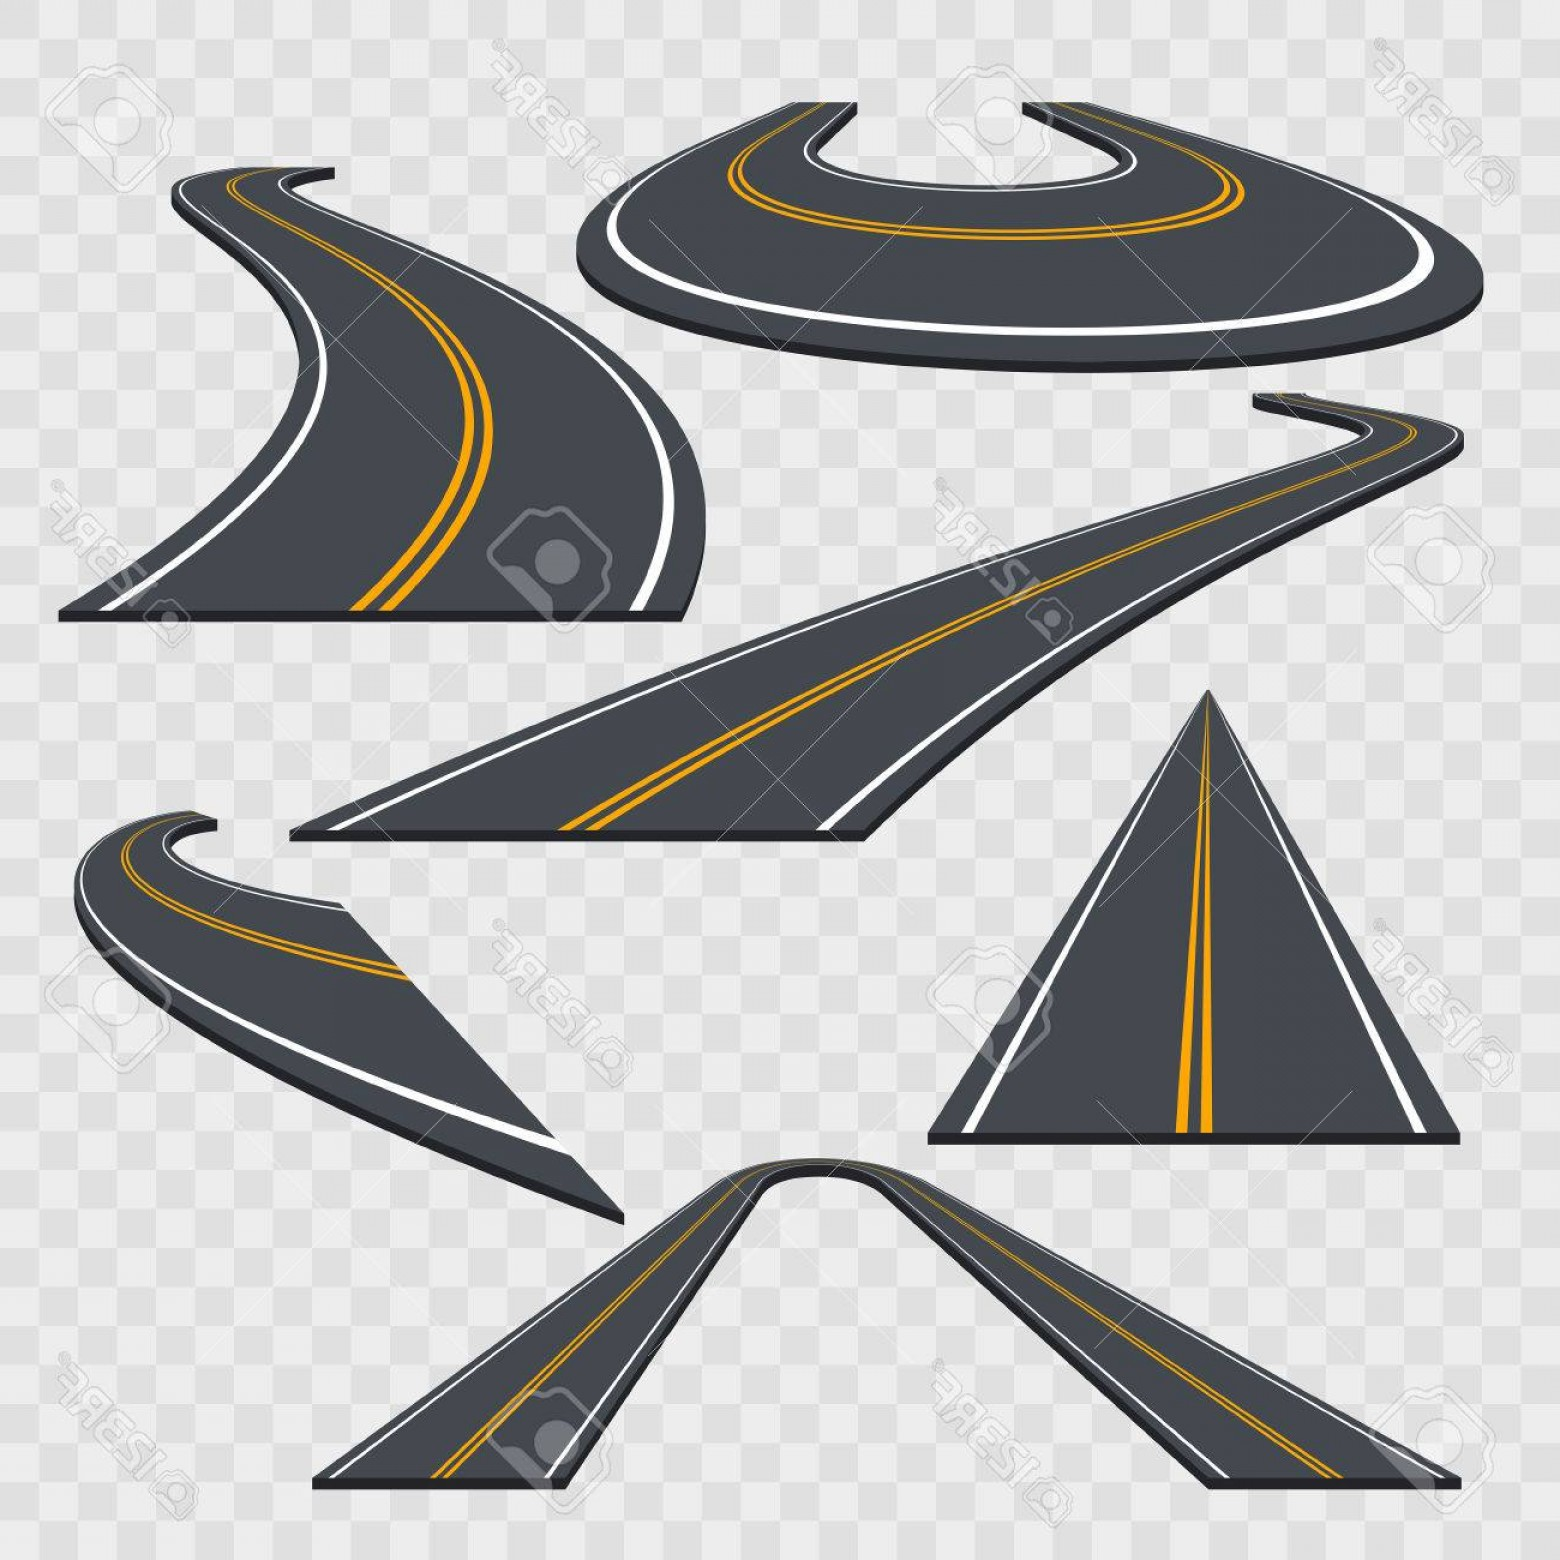 Transparent Curved Road Vector: Photostock Vector Different Perspective Curved Road Set On A Transparent Background Vector Illustration